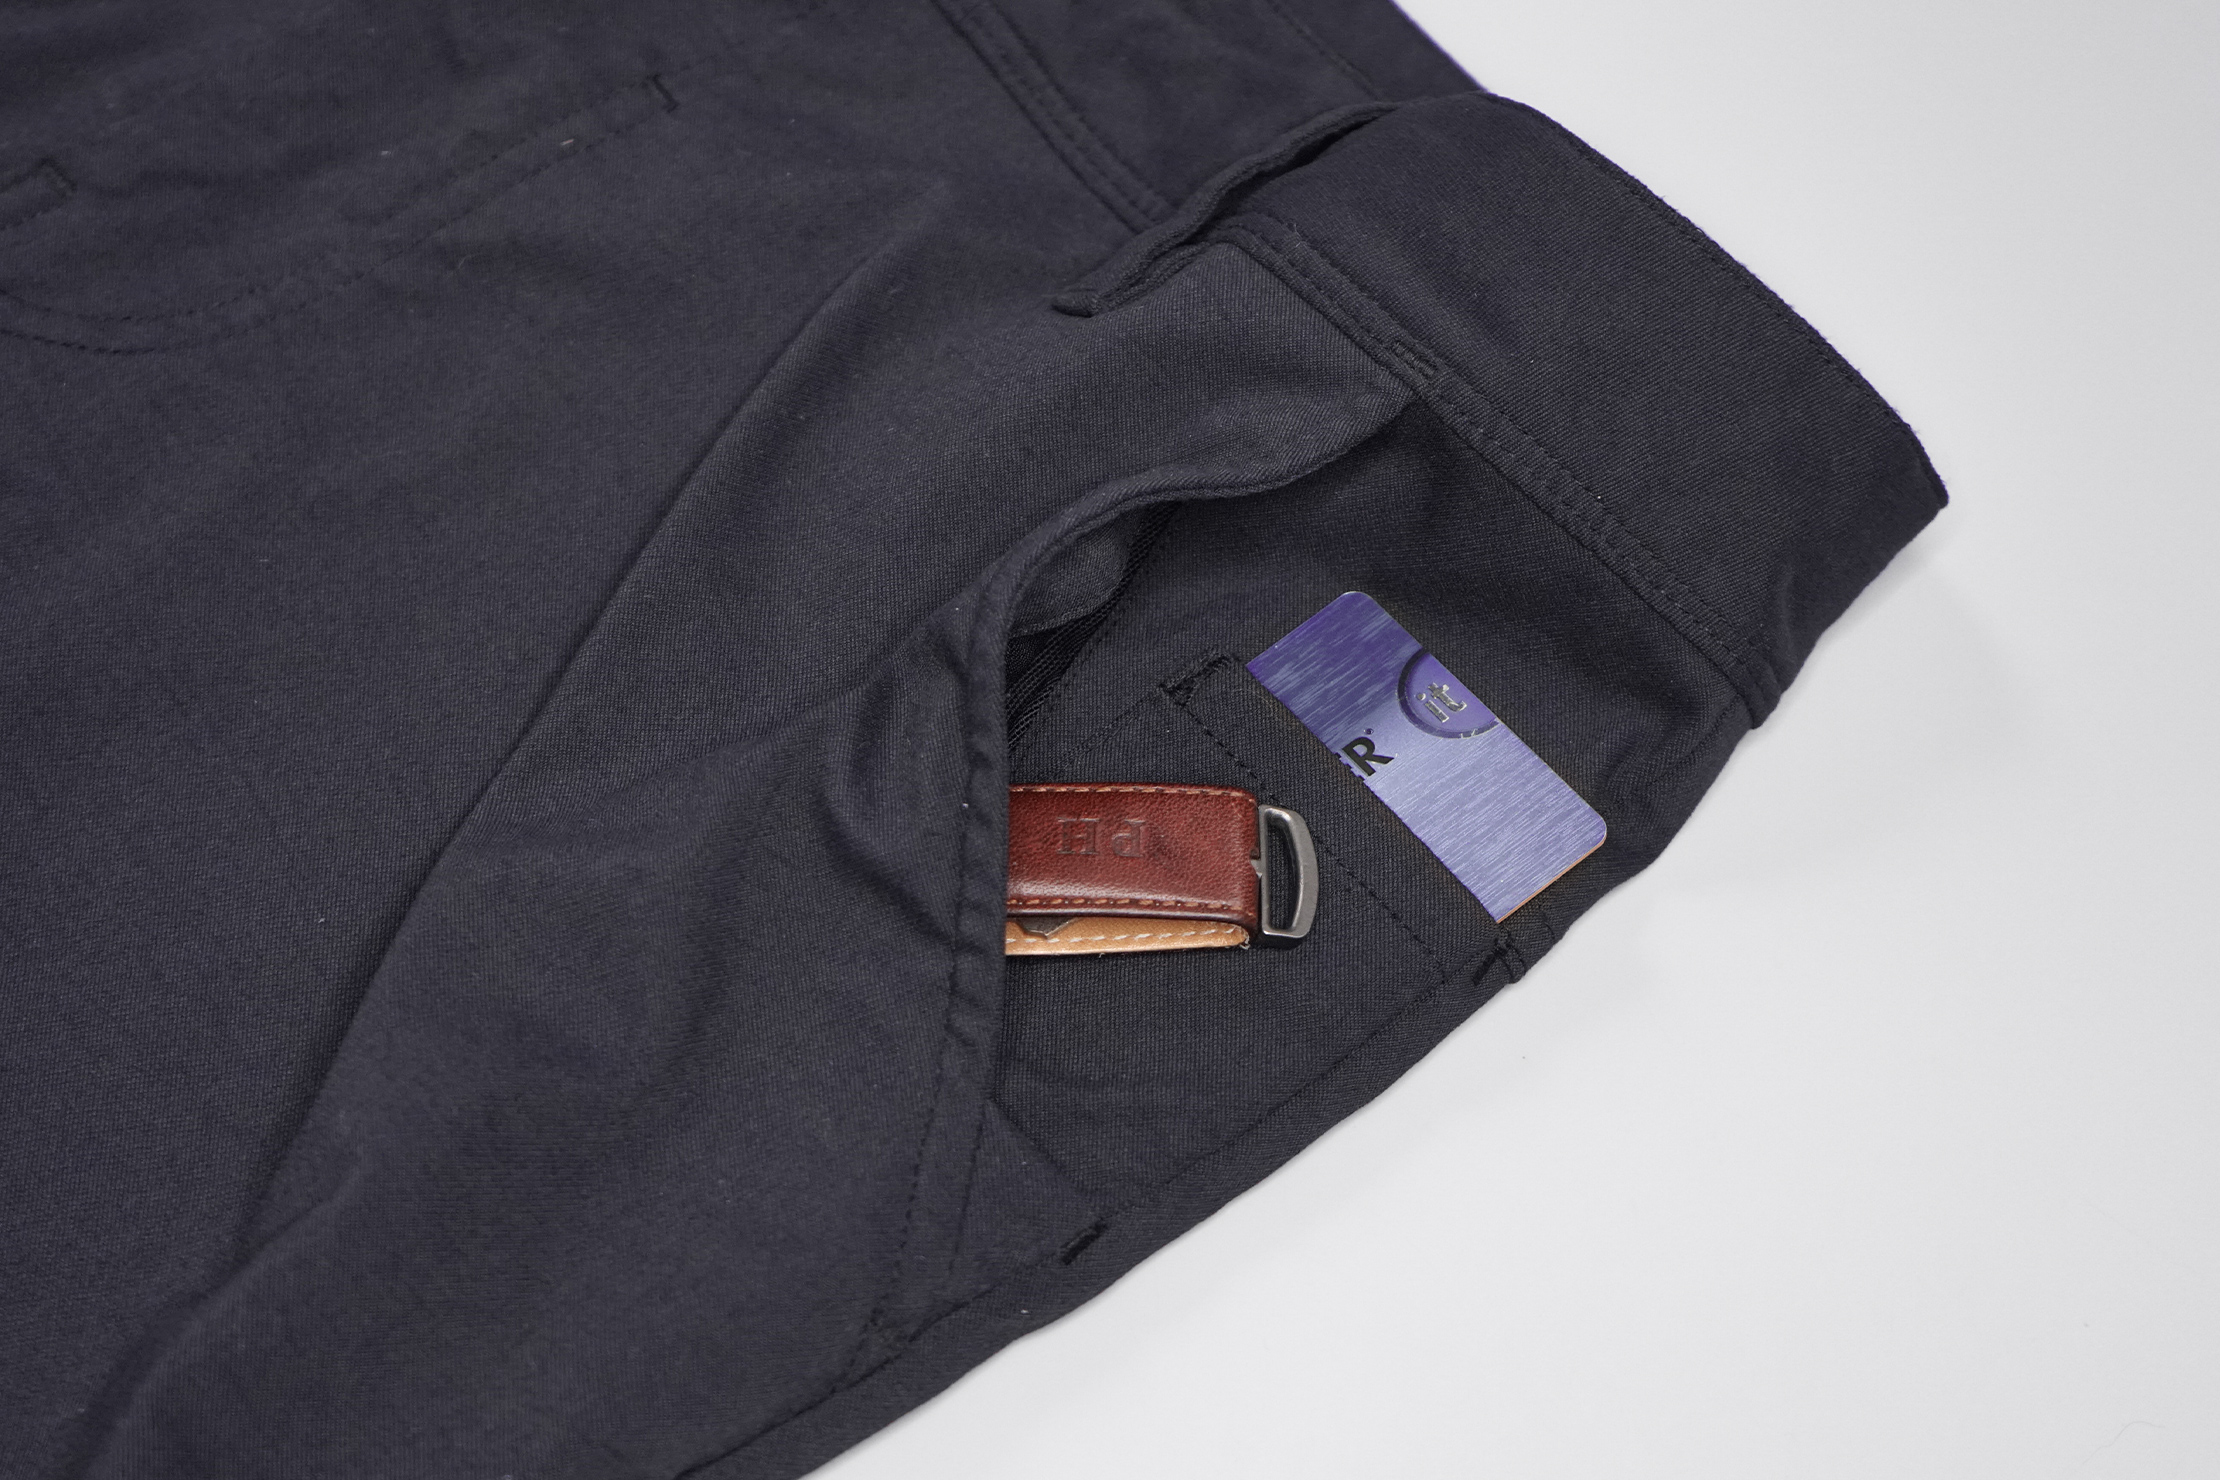 686 Everywhere Multi Pant Front Pocket